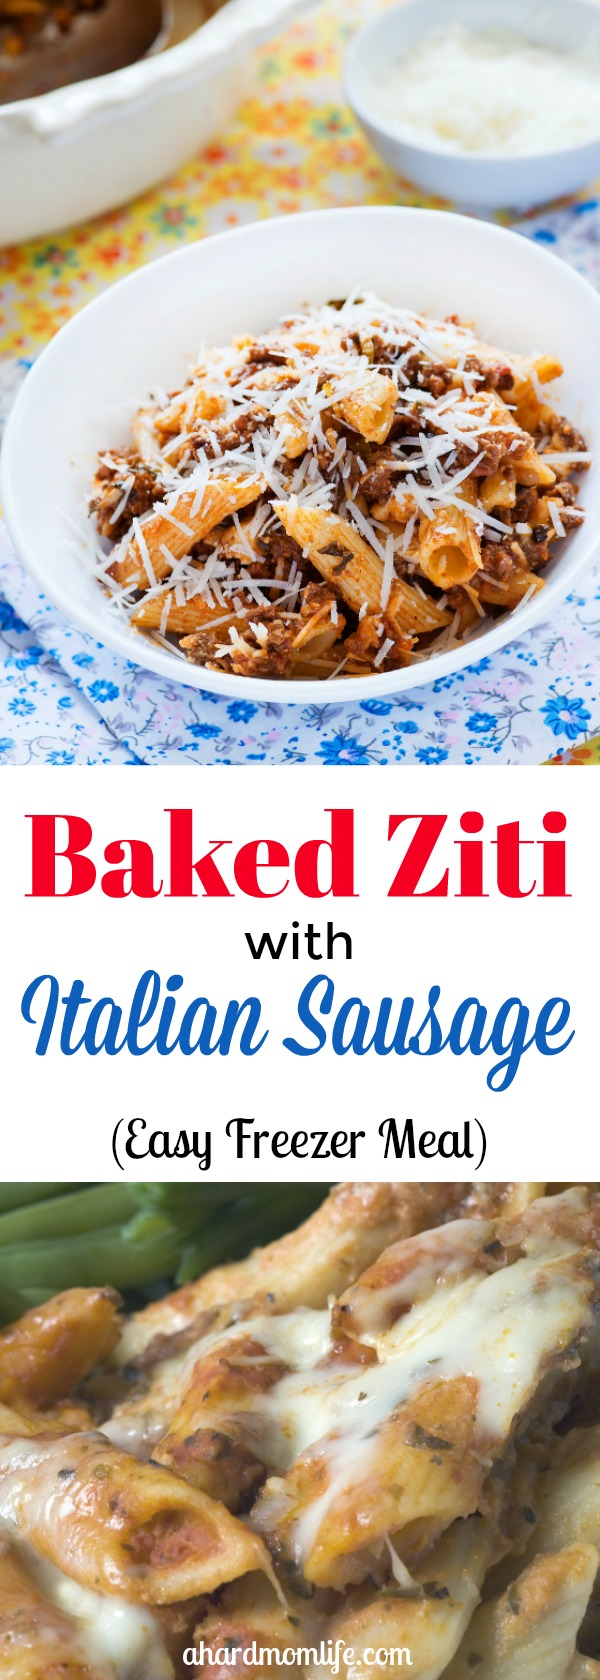 Looking for an easy freezer meal to prep and save time? Or, are you just looking for an easy weeknight meal that your kids will actually eat? Give this baked ziti with Italian sausage a try. You won't be disappointed.